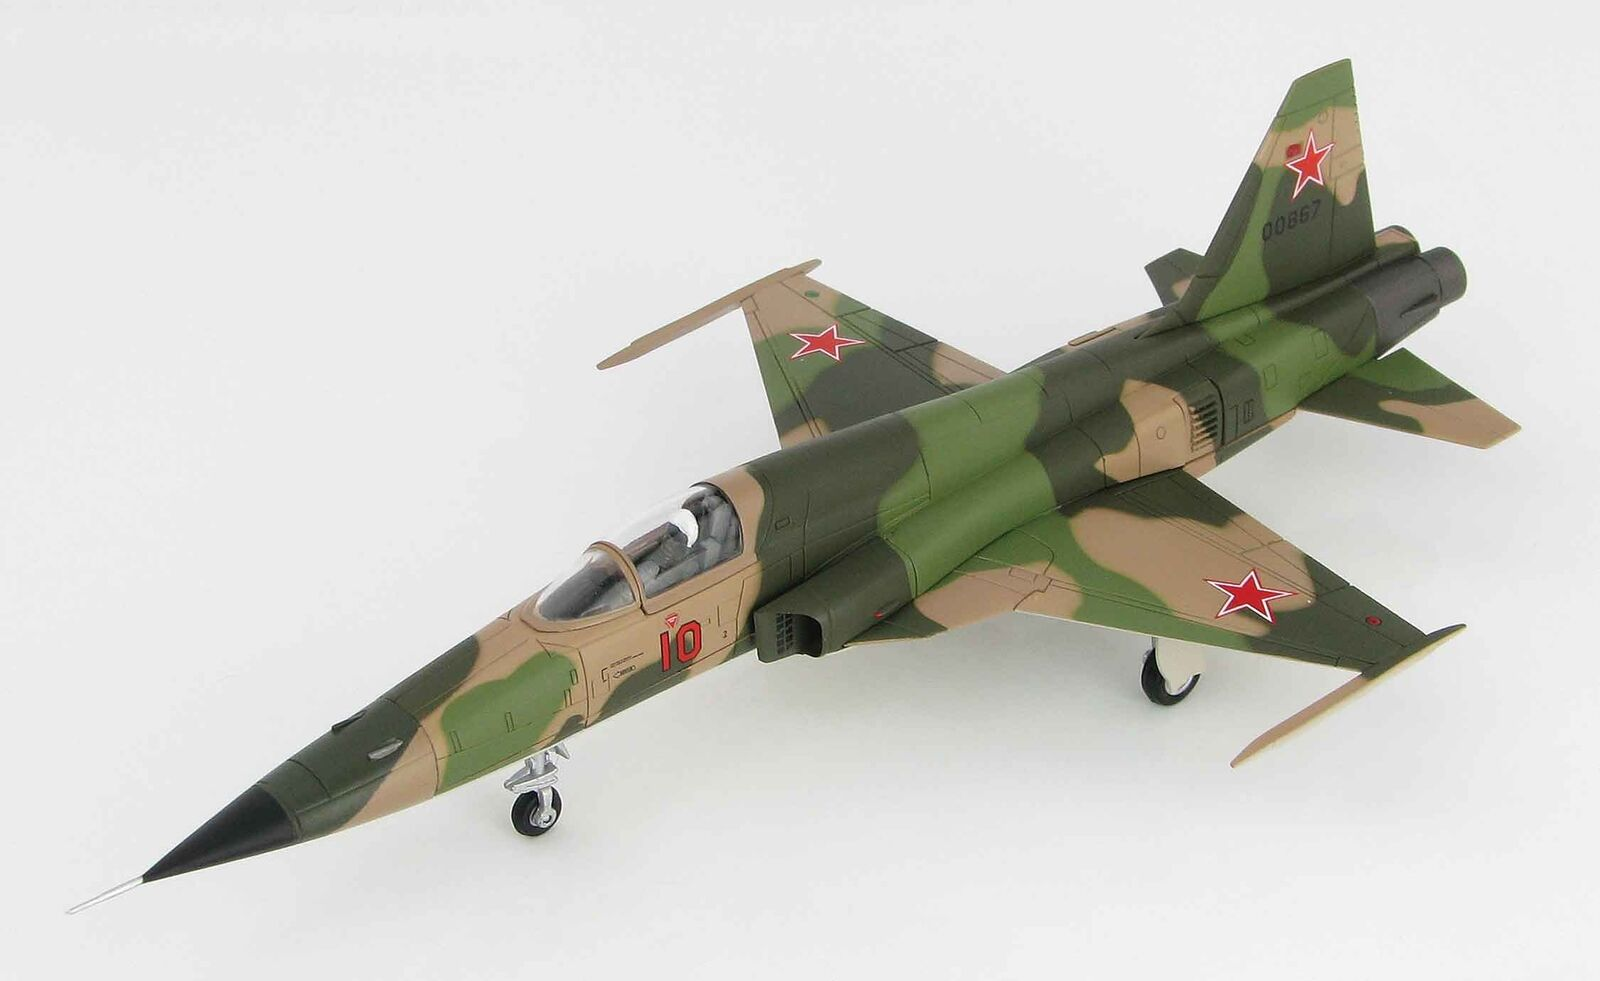 Hobby Master 3328 F-5E Tiger II 'rosso 10' 10' 10' USSR 1970s 1/72 Scale Diecast Model 48a8a7